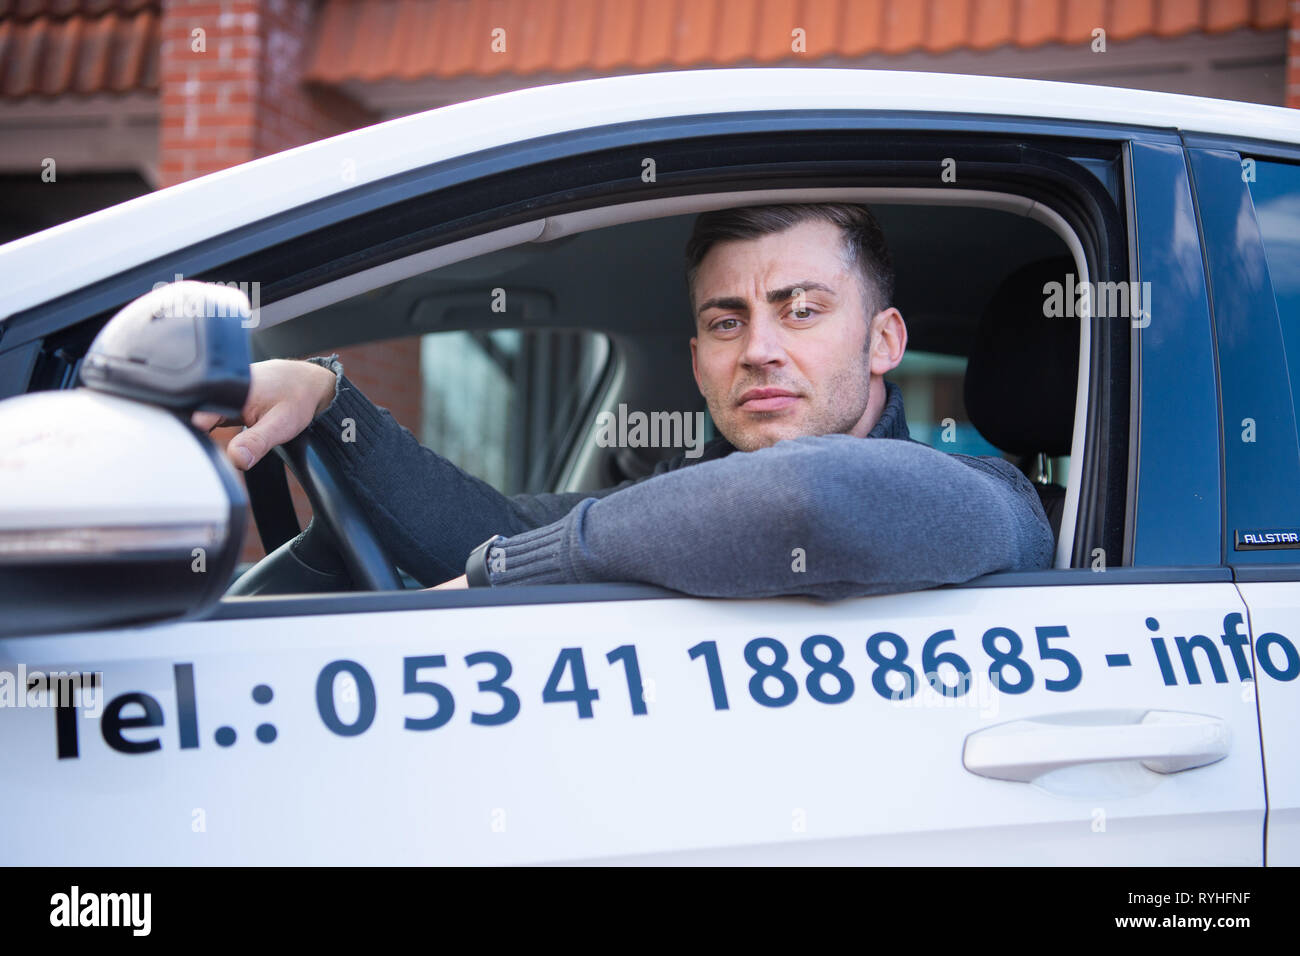 Lengede, Germany. 05th Mar, 2019. Tom Gerhard Tiessen, head of the A and G Driving Academy, sits in a driving school car. The European Court of Justice (ECJ) will decide on 14.03.2019 whether driving schools will be exempted from VAT. Tiessen had initiated the proceedings. Credit: Christophe Gateau/dpa/Alamy Live News - Stock Image